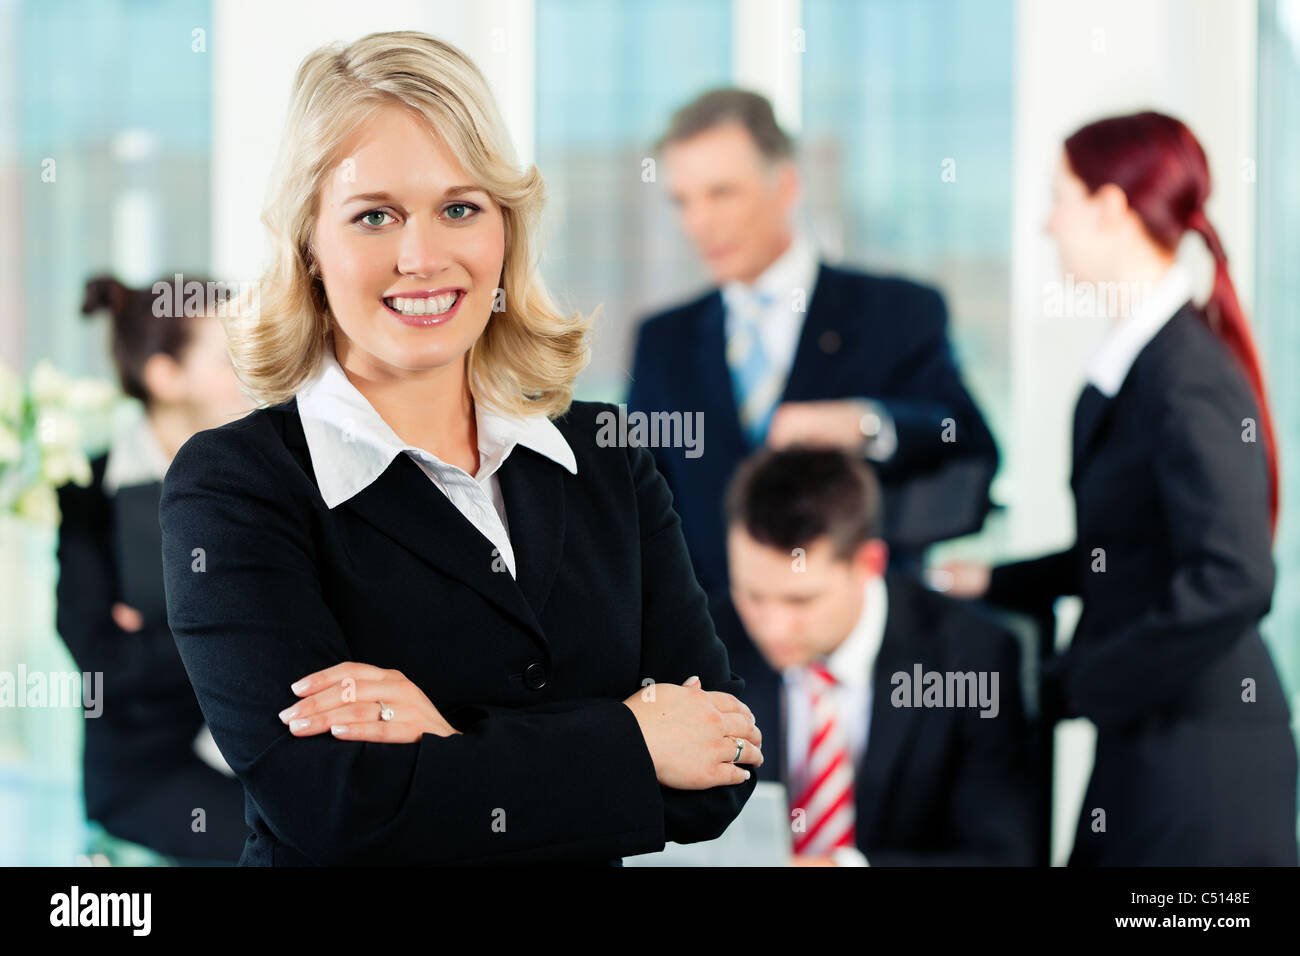 Business - meeting in an office; a colleague is looking into the camera - Stock Image